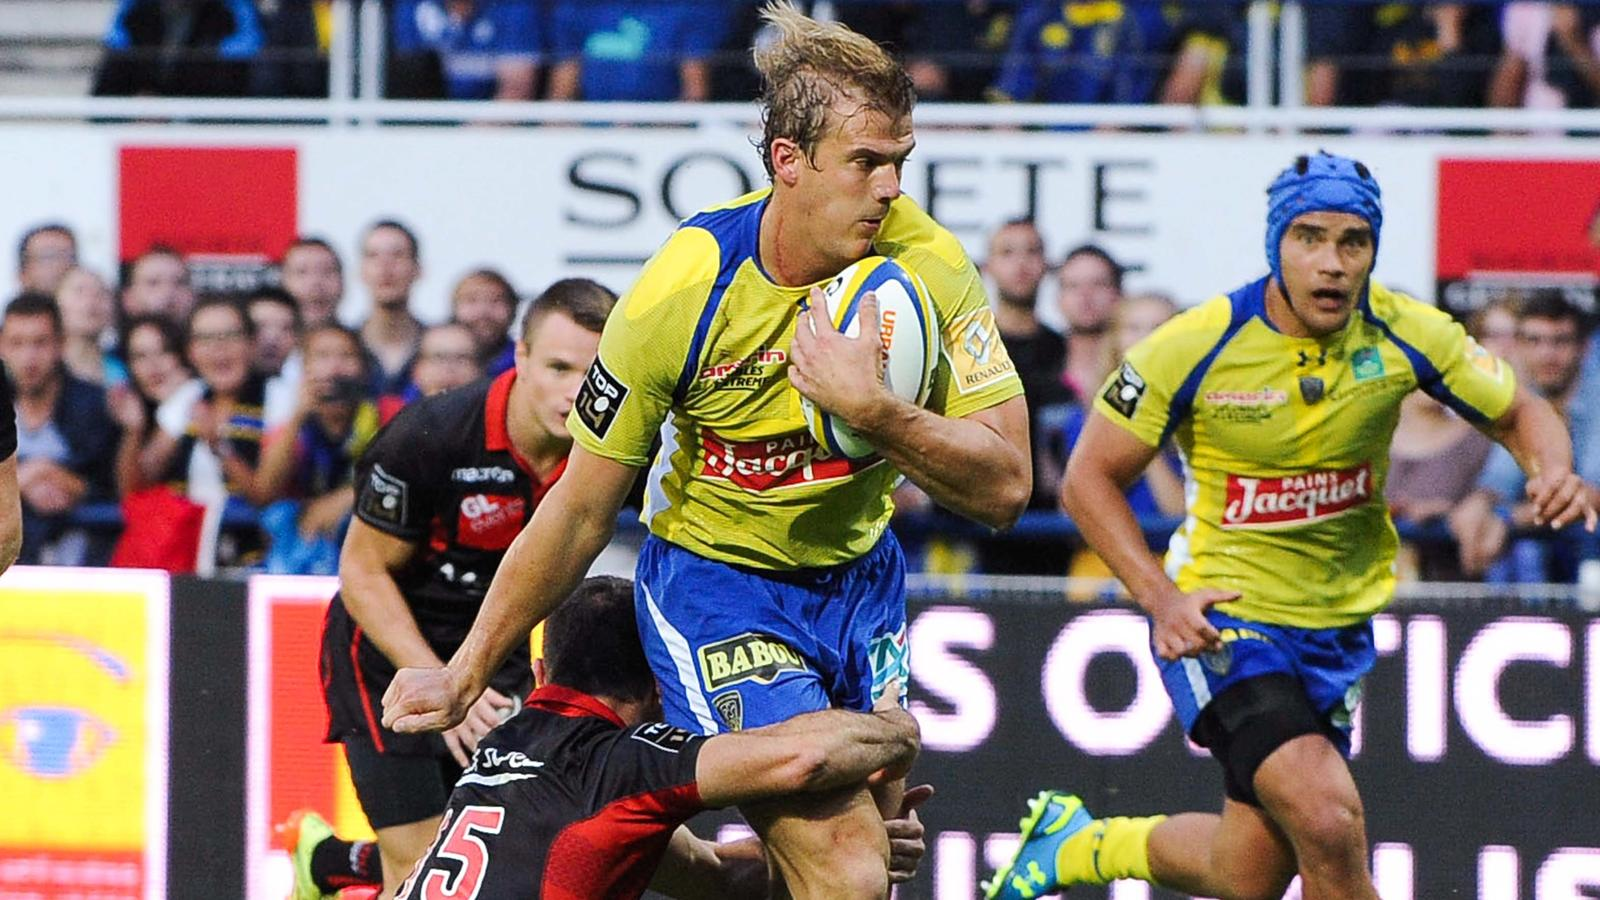 Match Rugby Aviron Bayonnais vs Clermont Auvergne en direct streaming live